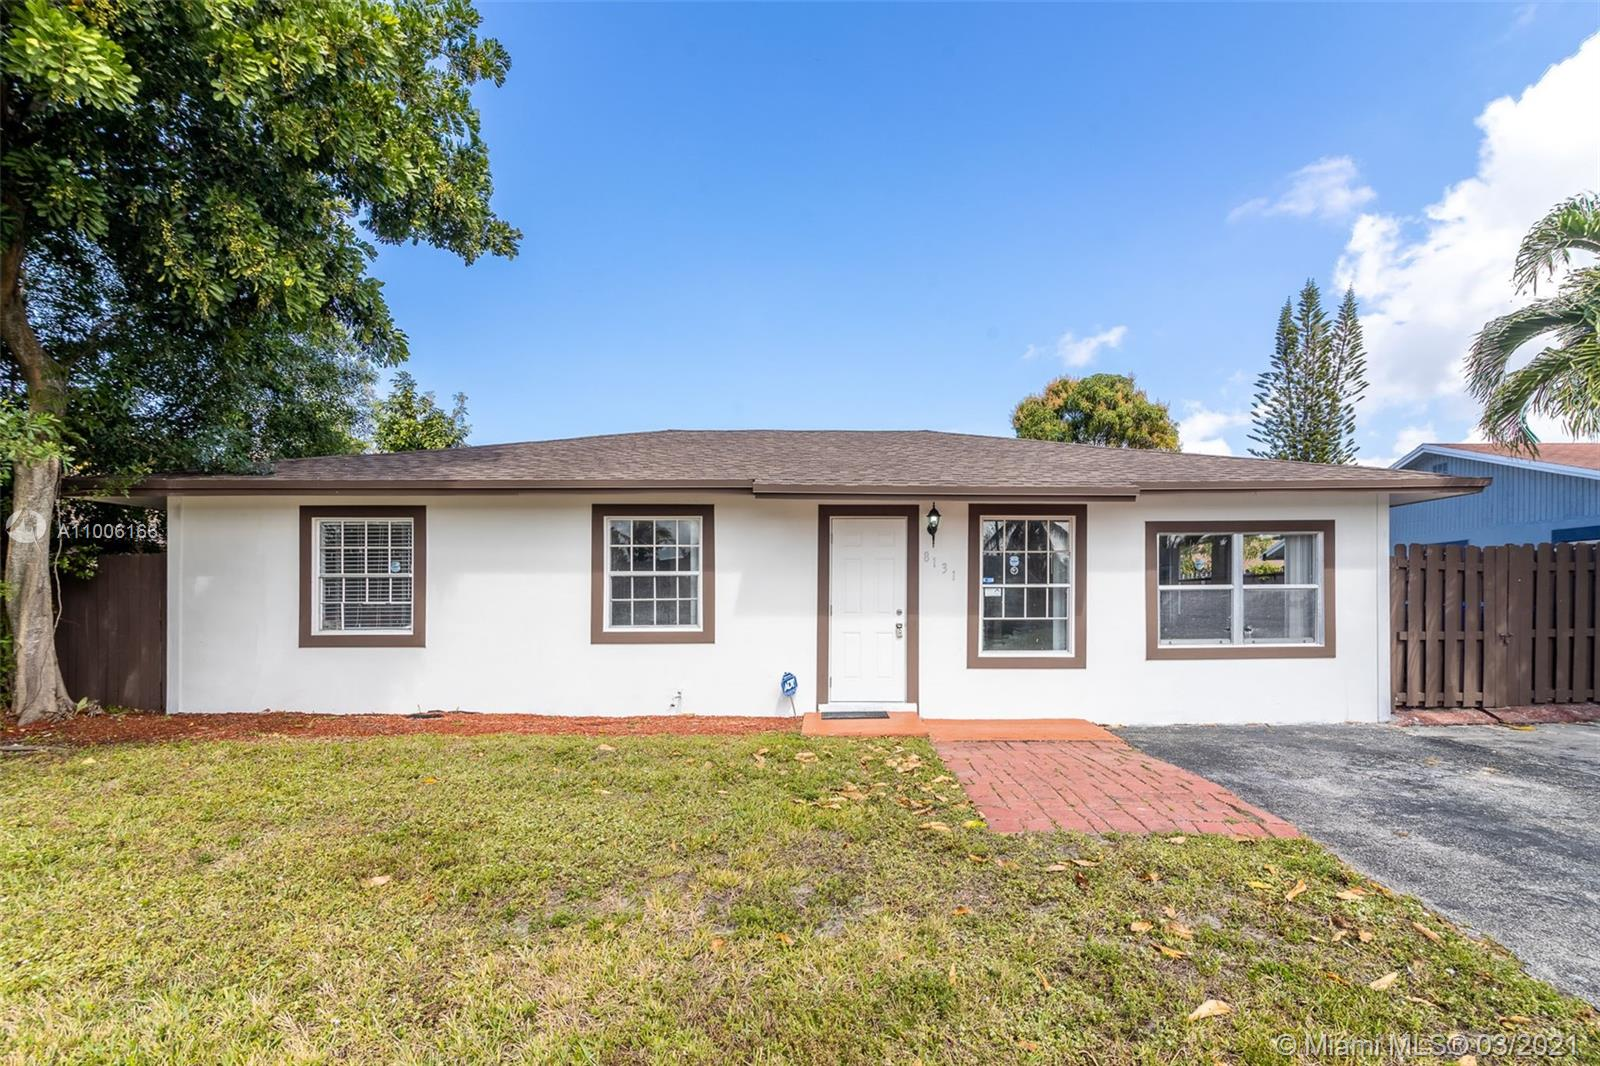 Beautiful 3/2 home completely remodeled, New roof, new AC, kitchen updated with new stain steel appliances. Located in the heart of North Lauderdale, close to highways and shopping centers, very quiet community with great neighbors.